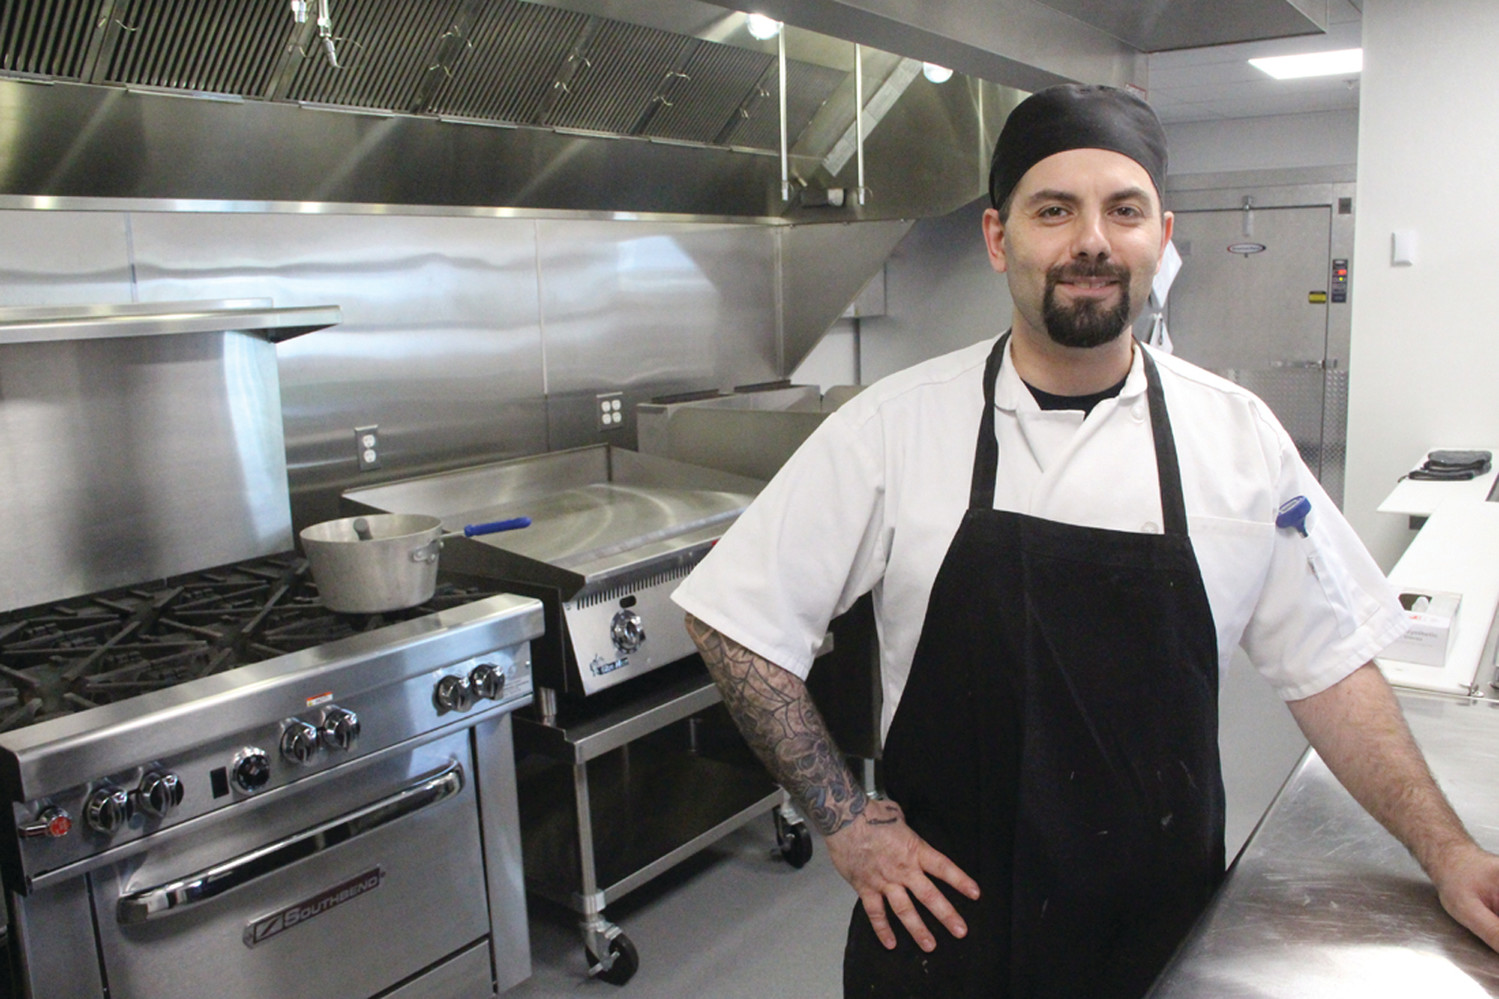 HIS DOMAIN: Nick Tolias oversees kitchen operations at Brentwood.